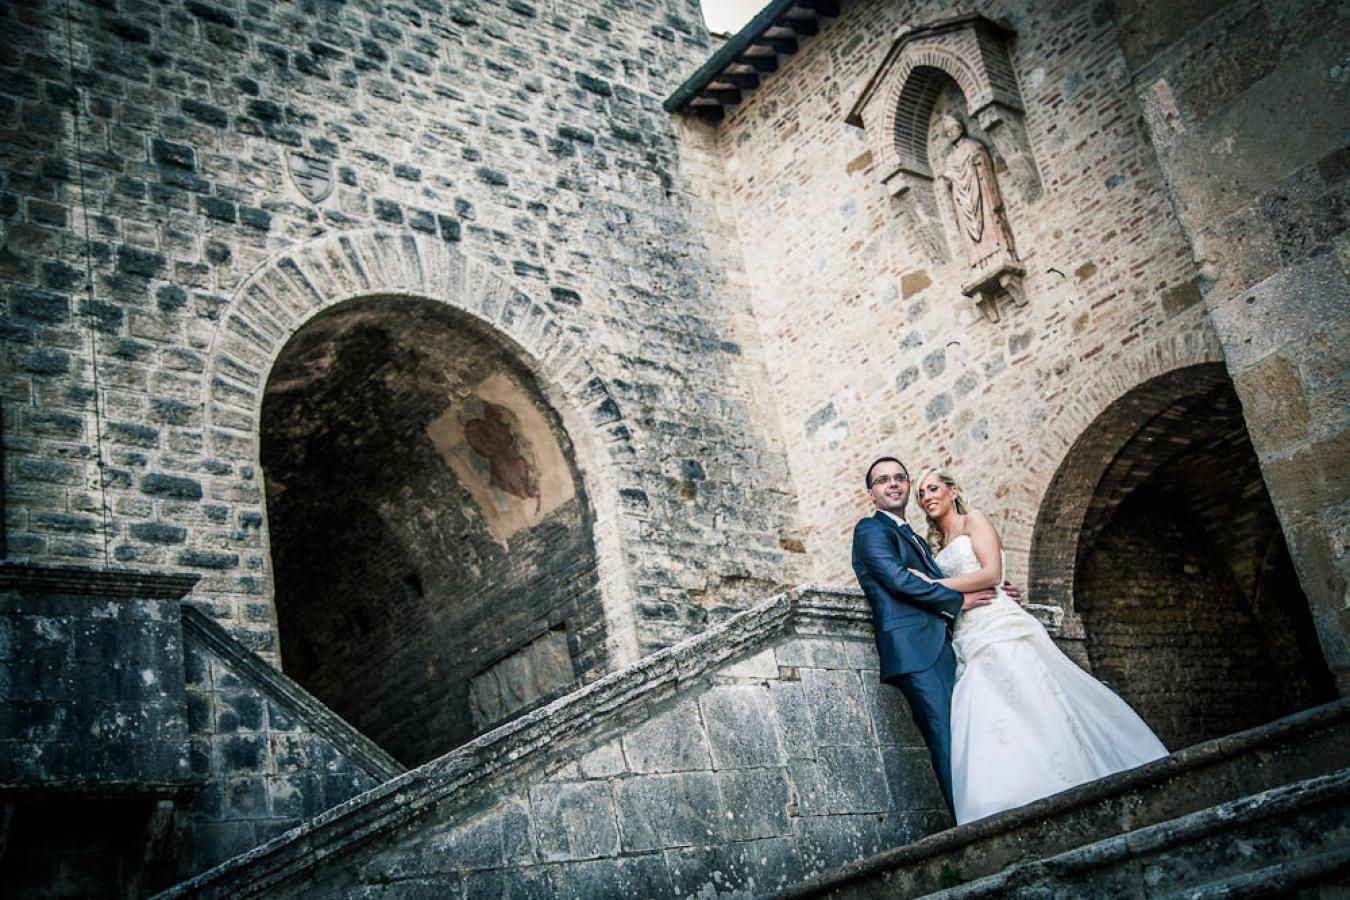 foto 3 Wedding Photography in Tuscany - San Gimignano with Giacomo and Irene